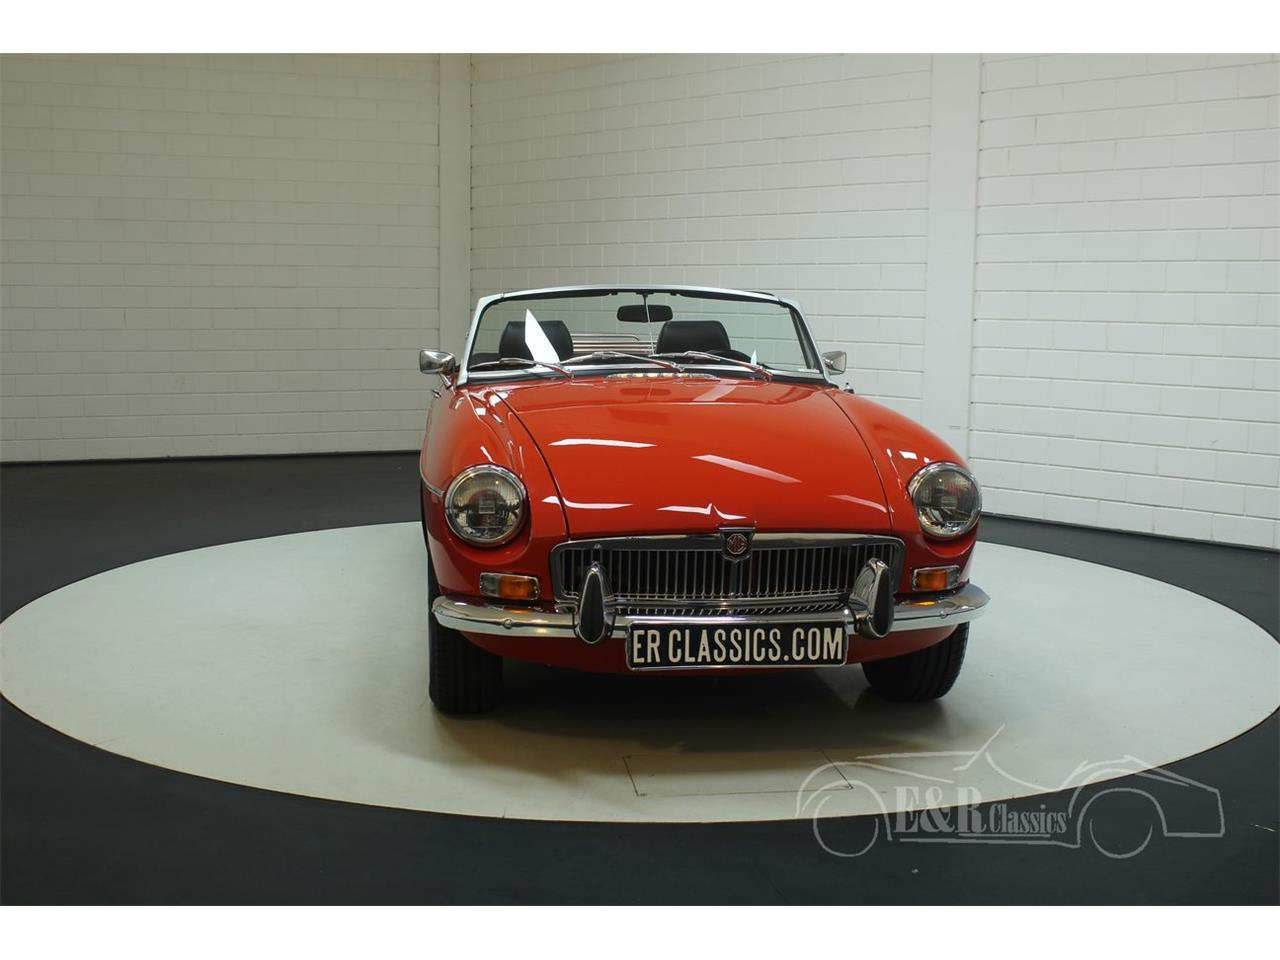 1977 MG MGB (CC-1303651) for sale in Waalwijk, Noord-Brabant